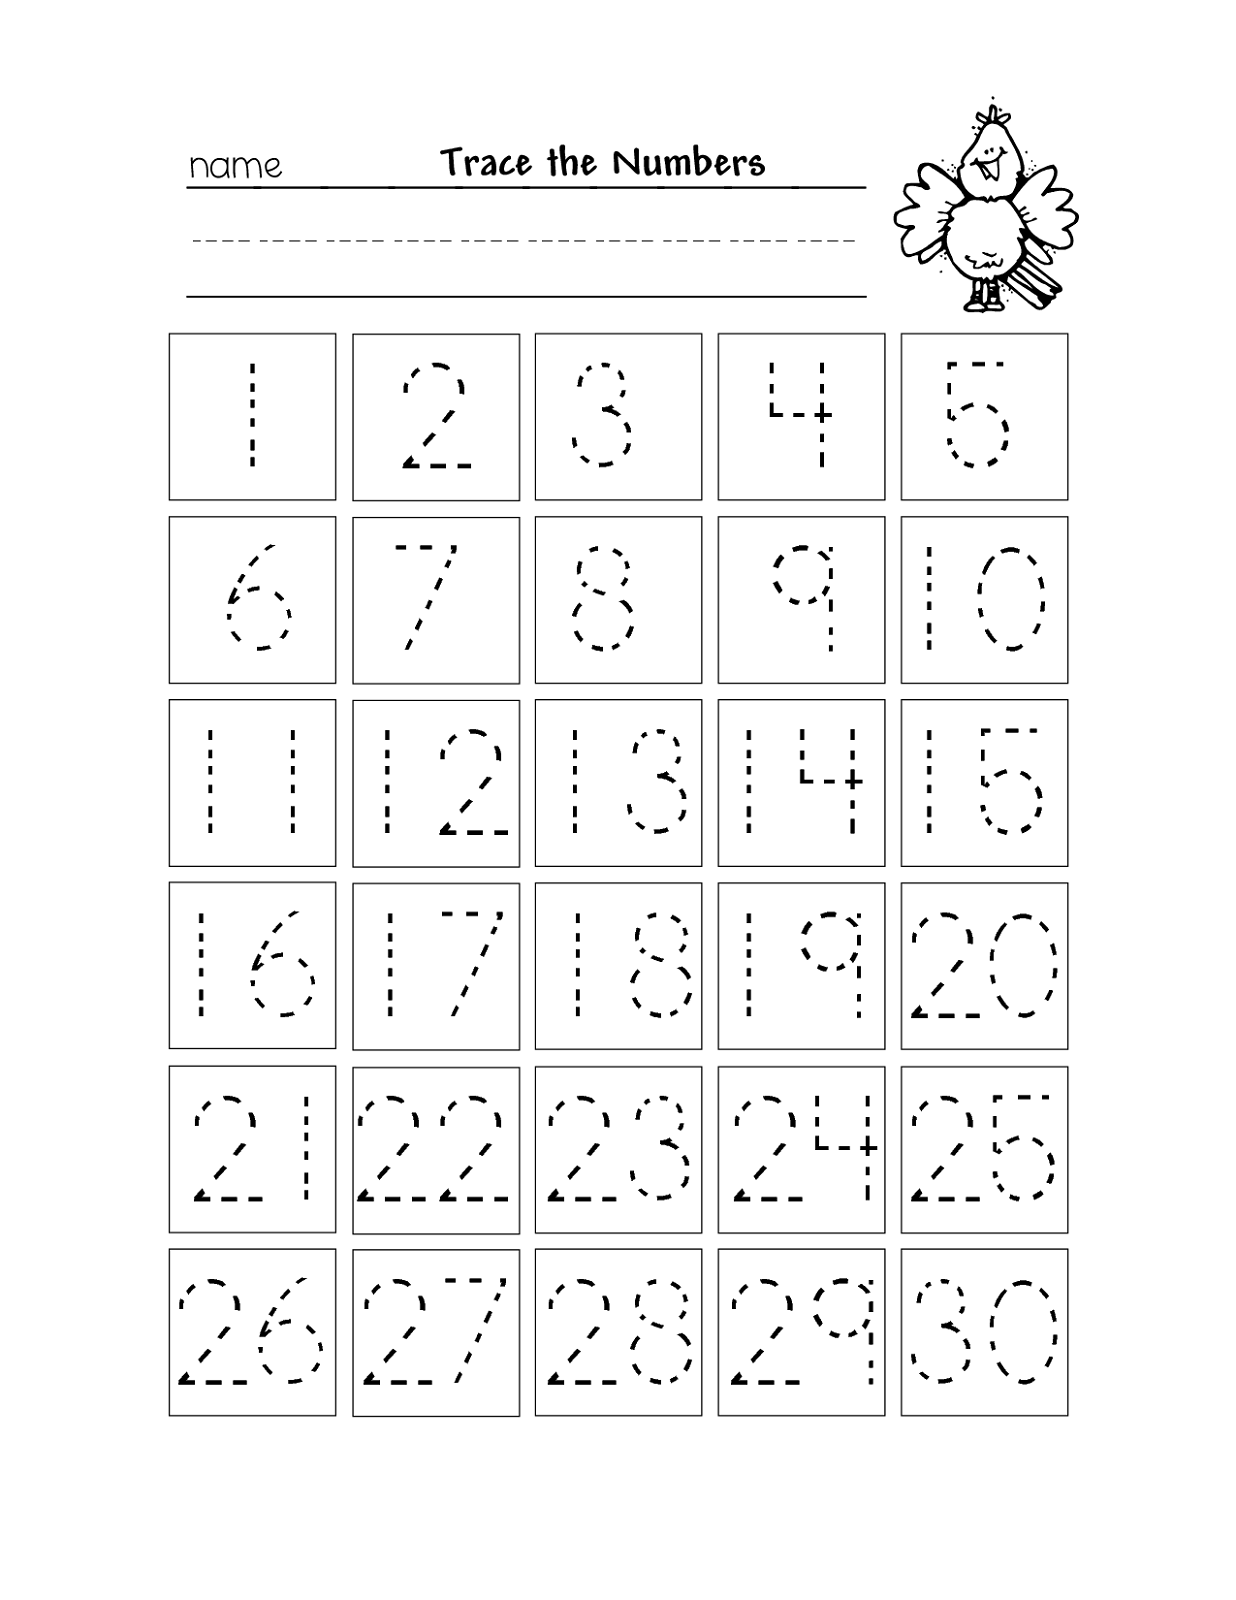 Worksheets Number Tracing Worksheets 1-30 trace the numbers 1 30 kiddo shelter kids worksheets printable shelter